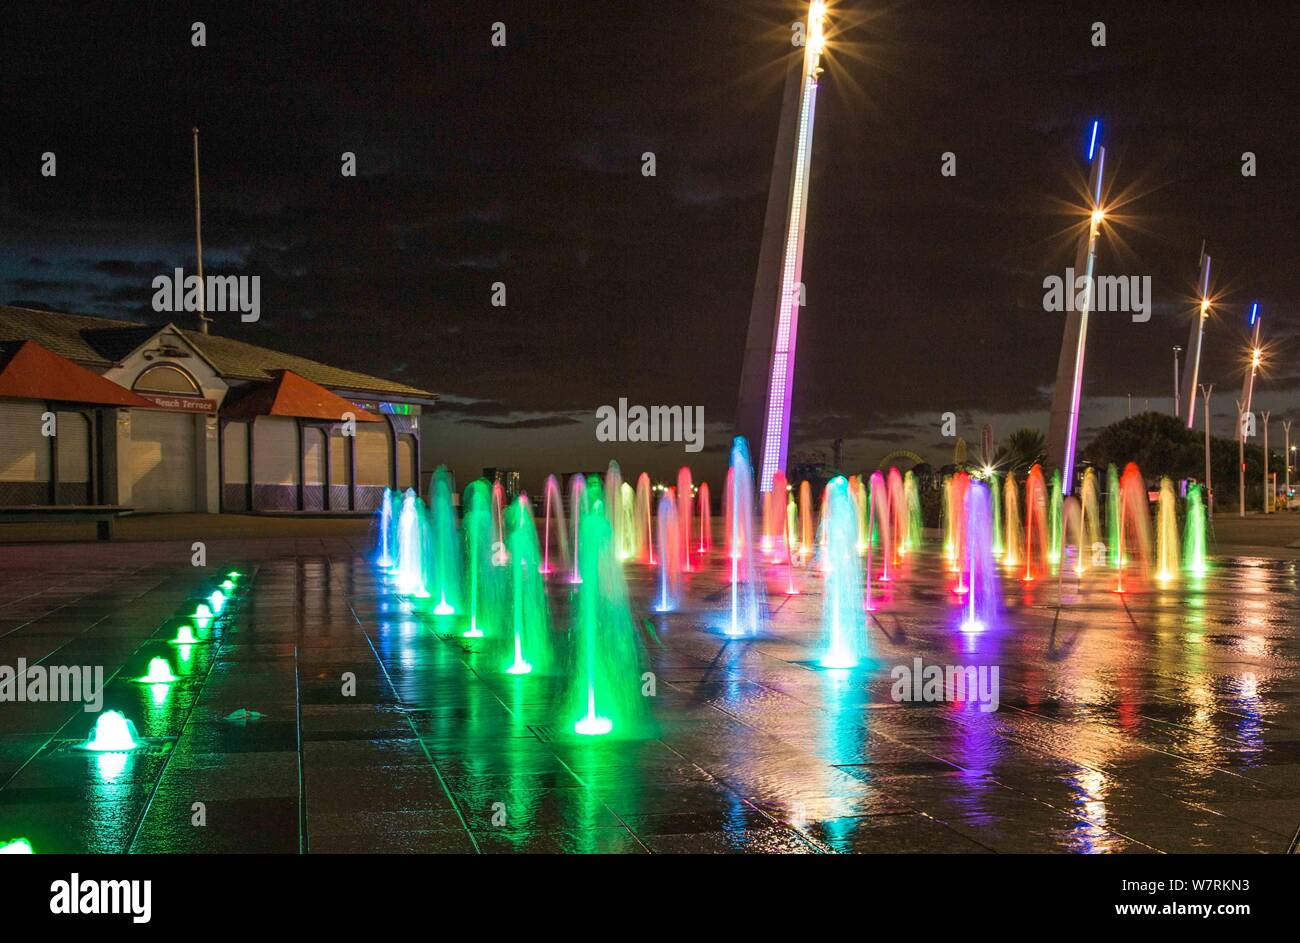 Night shot showing colourfully lit water display on Southend on Sea's promenade Stock Photo